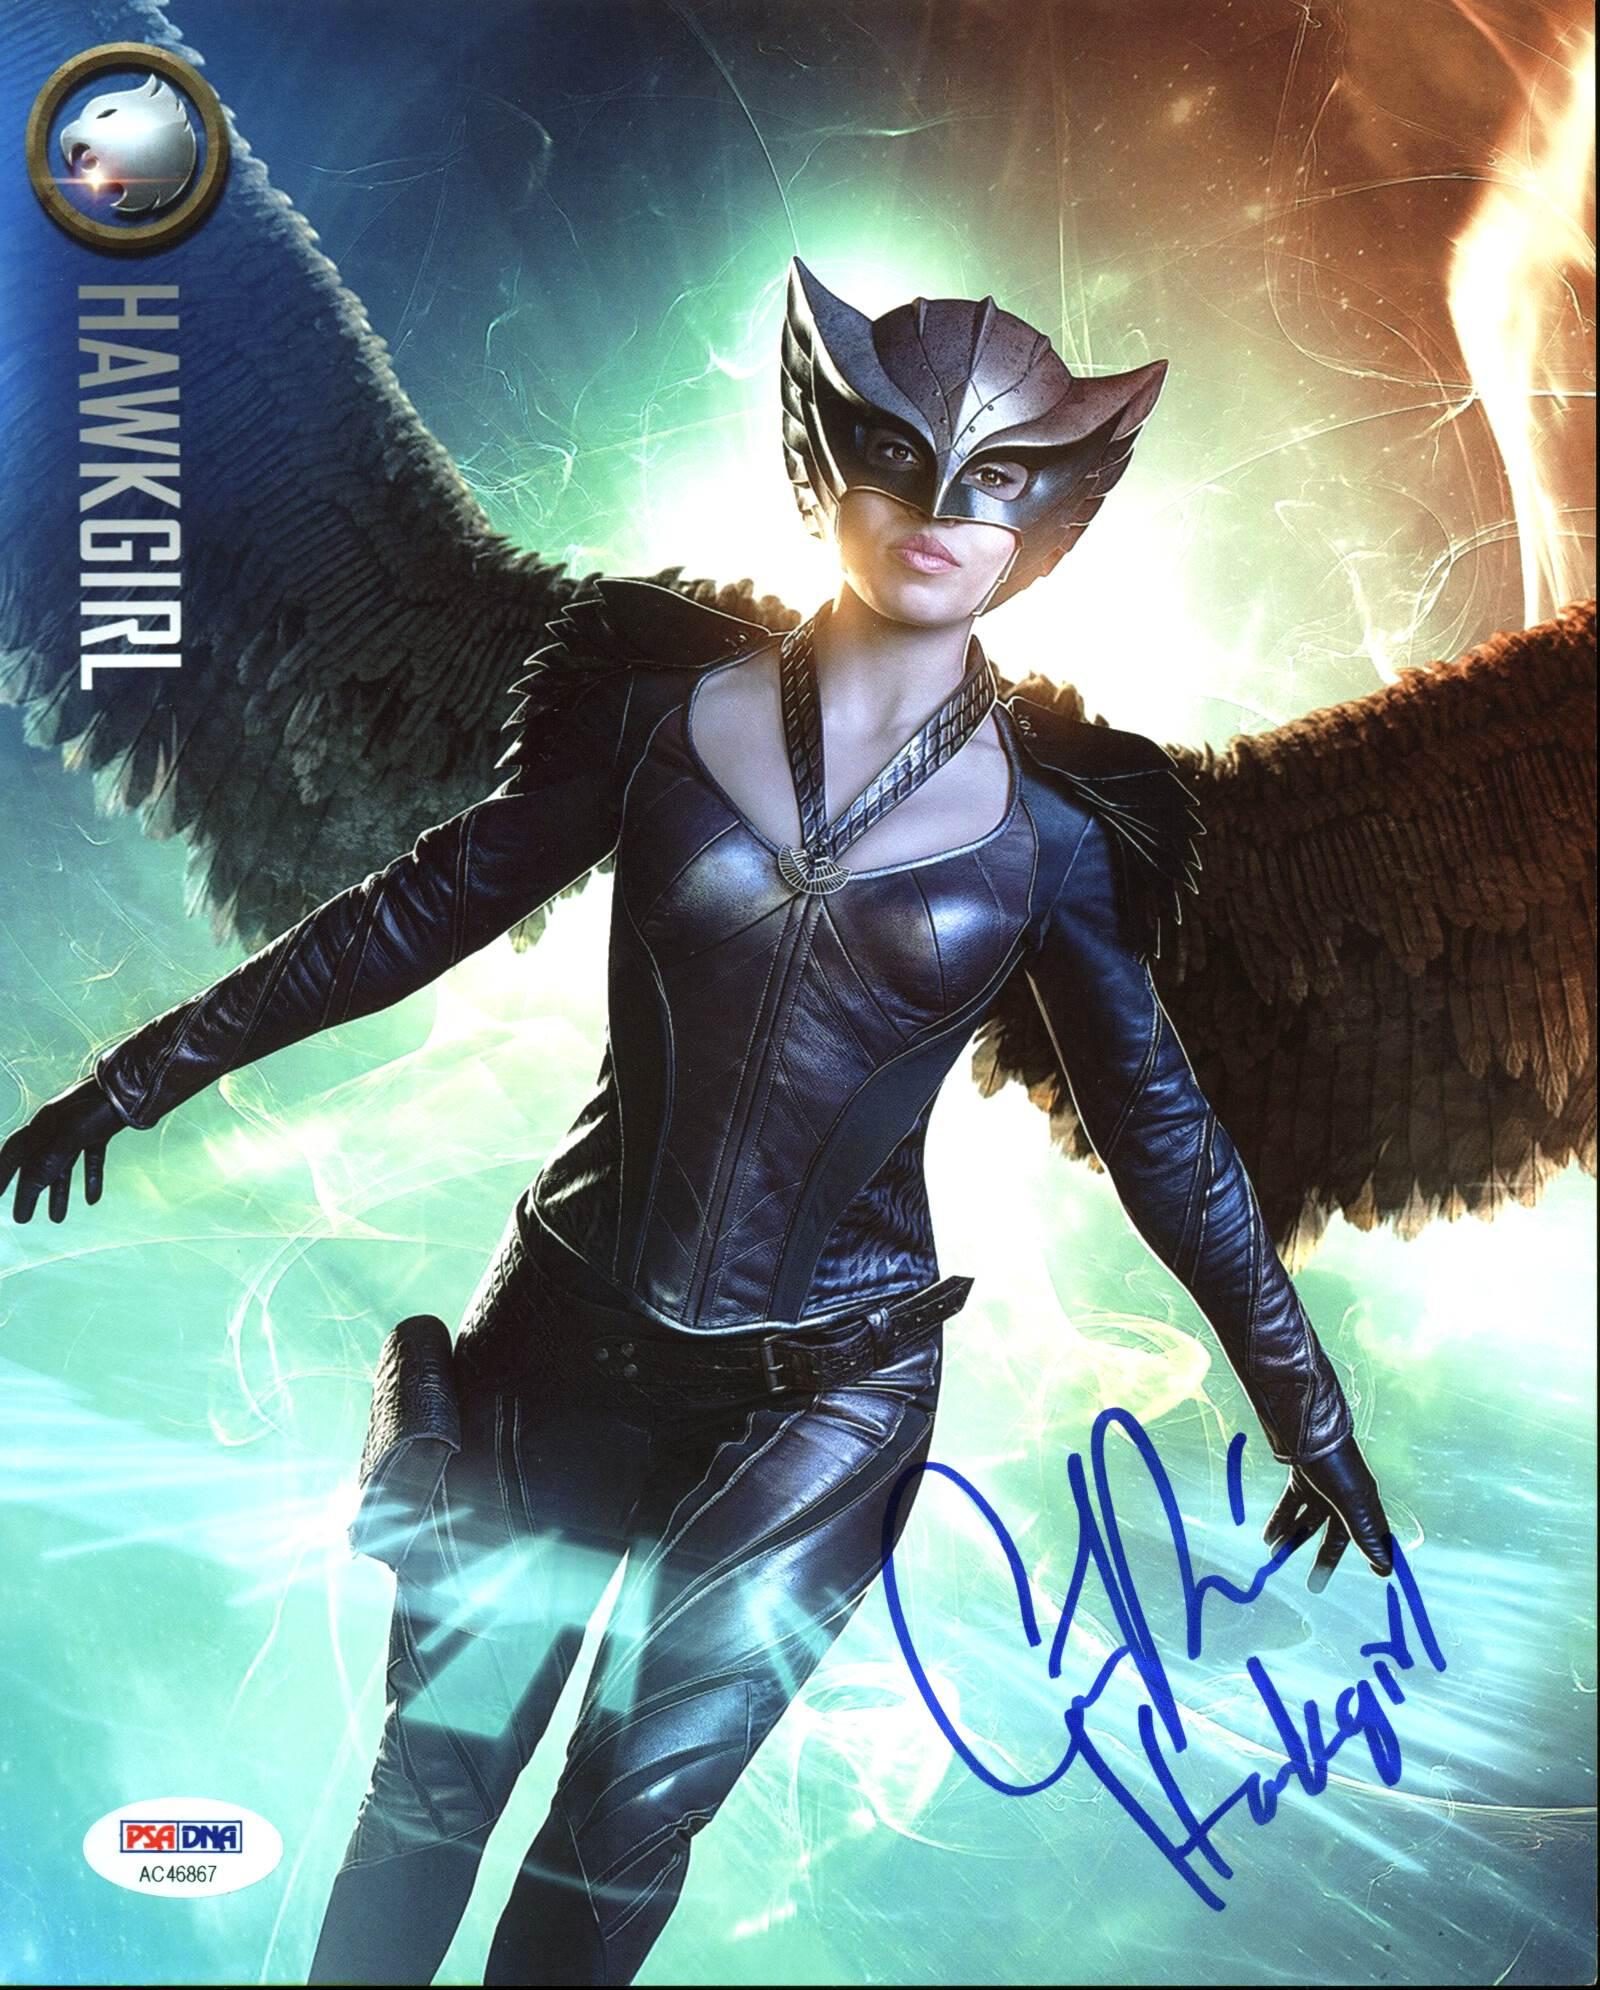 "Ciara Renee Legends of Tomorrow ""Hawkgirl"" Signed 8X10 Photo PSA/DNA #AC46867"